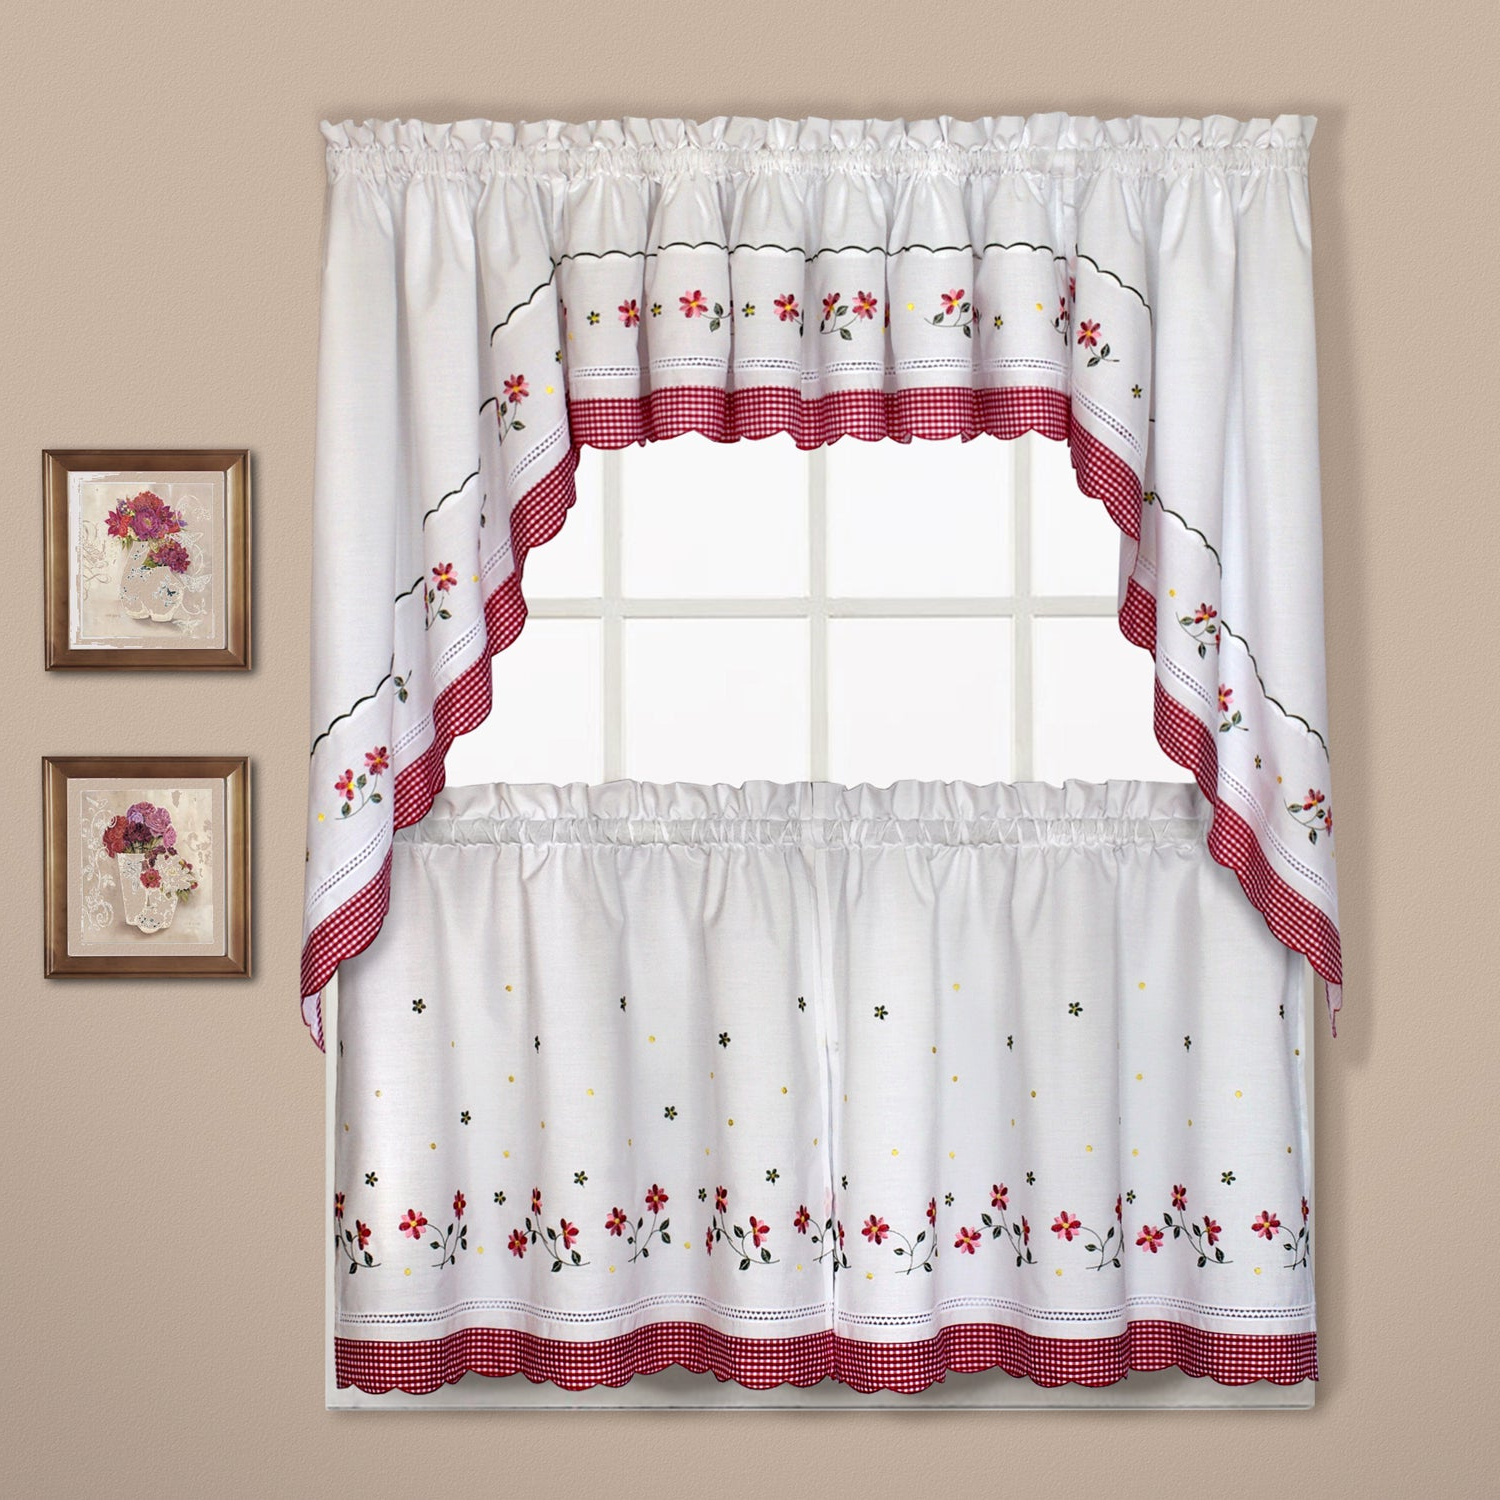 Oakwood Linen Style Decorative Curtain Tier Sets Intended For Popular Luxury Collection Gingham Light Filtering Straight Valance (View 14 of 20)